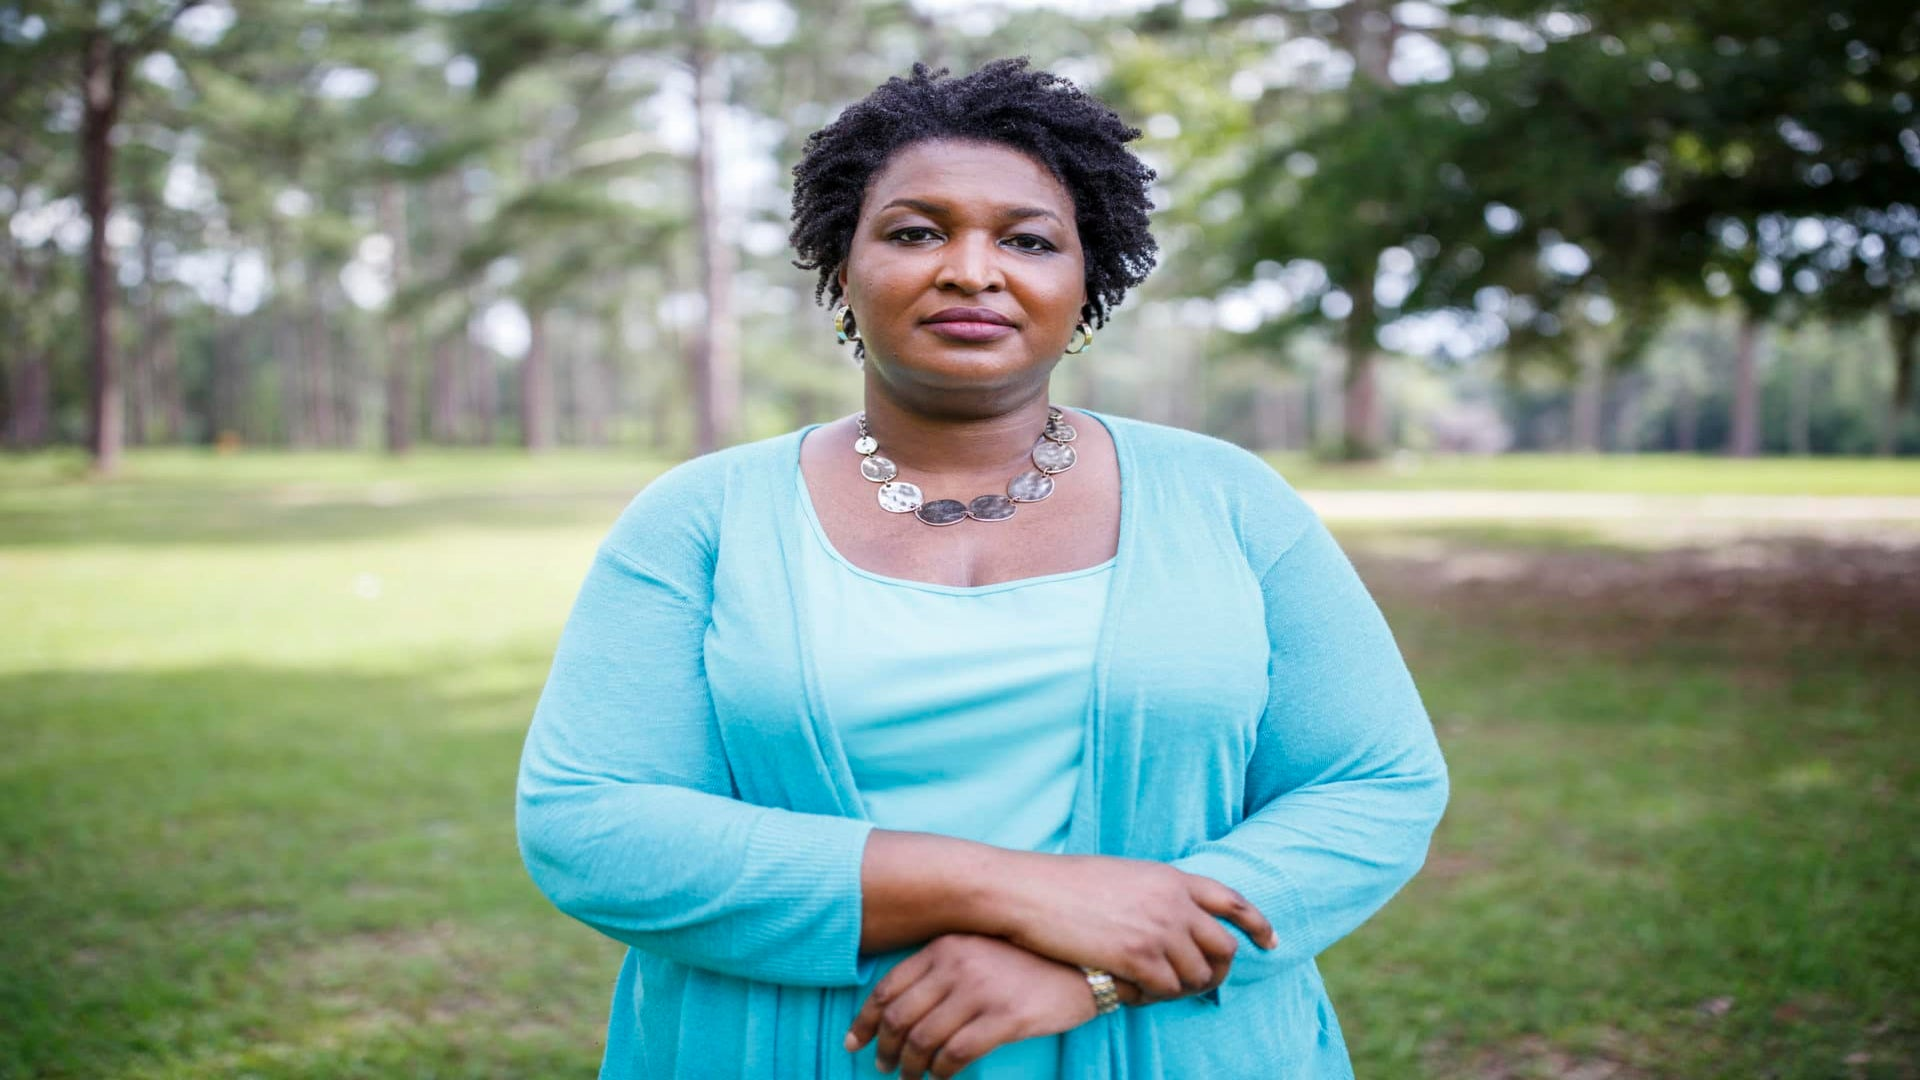 Stacey Abrams, Democratic Candidate For Governor of Georgia